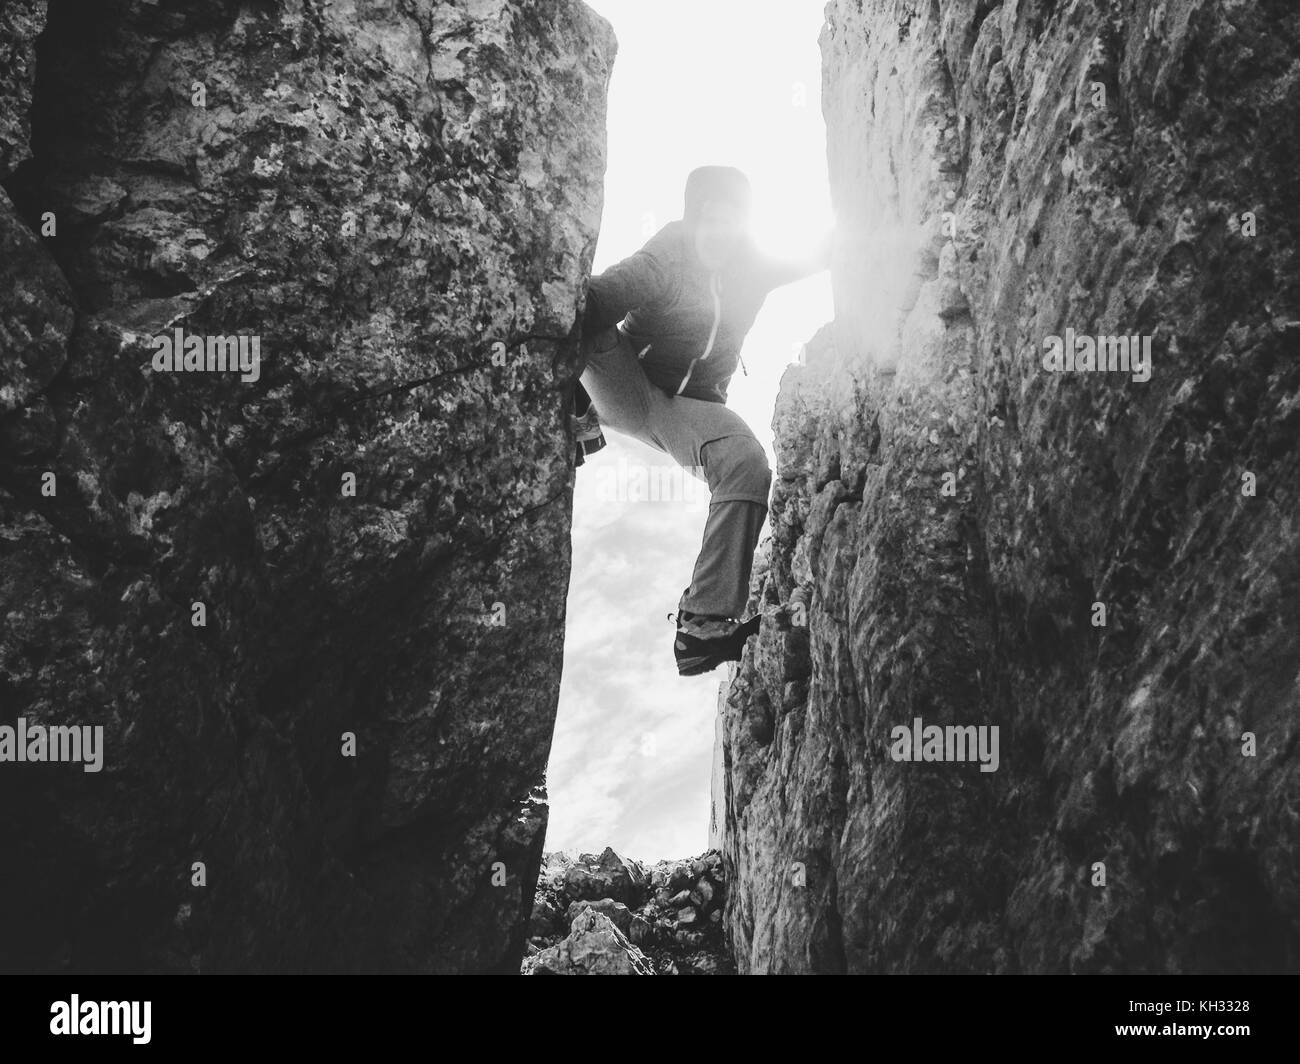 Silhouette of climber in crevasse in black and white. - Stock Image